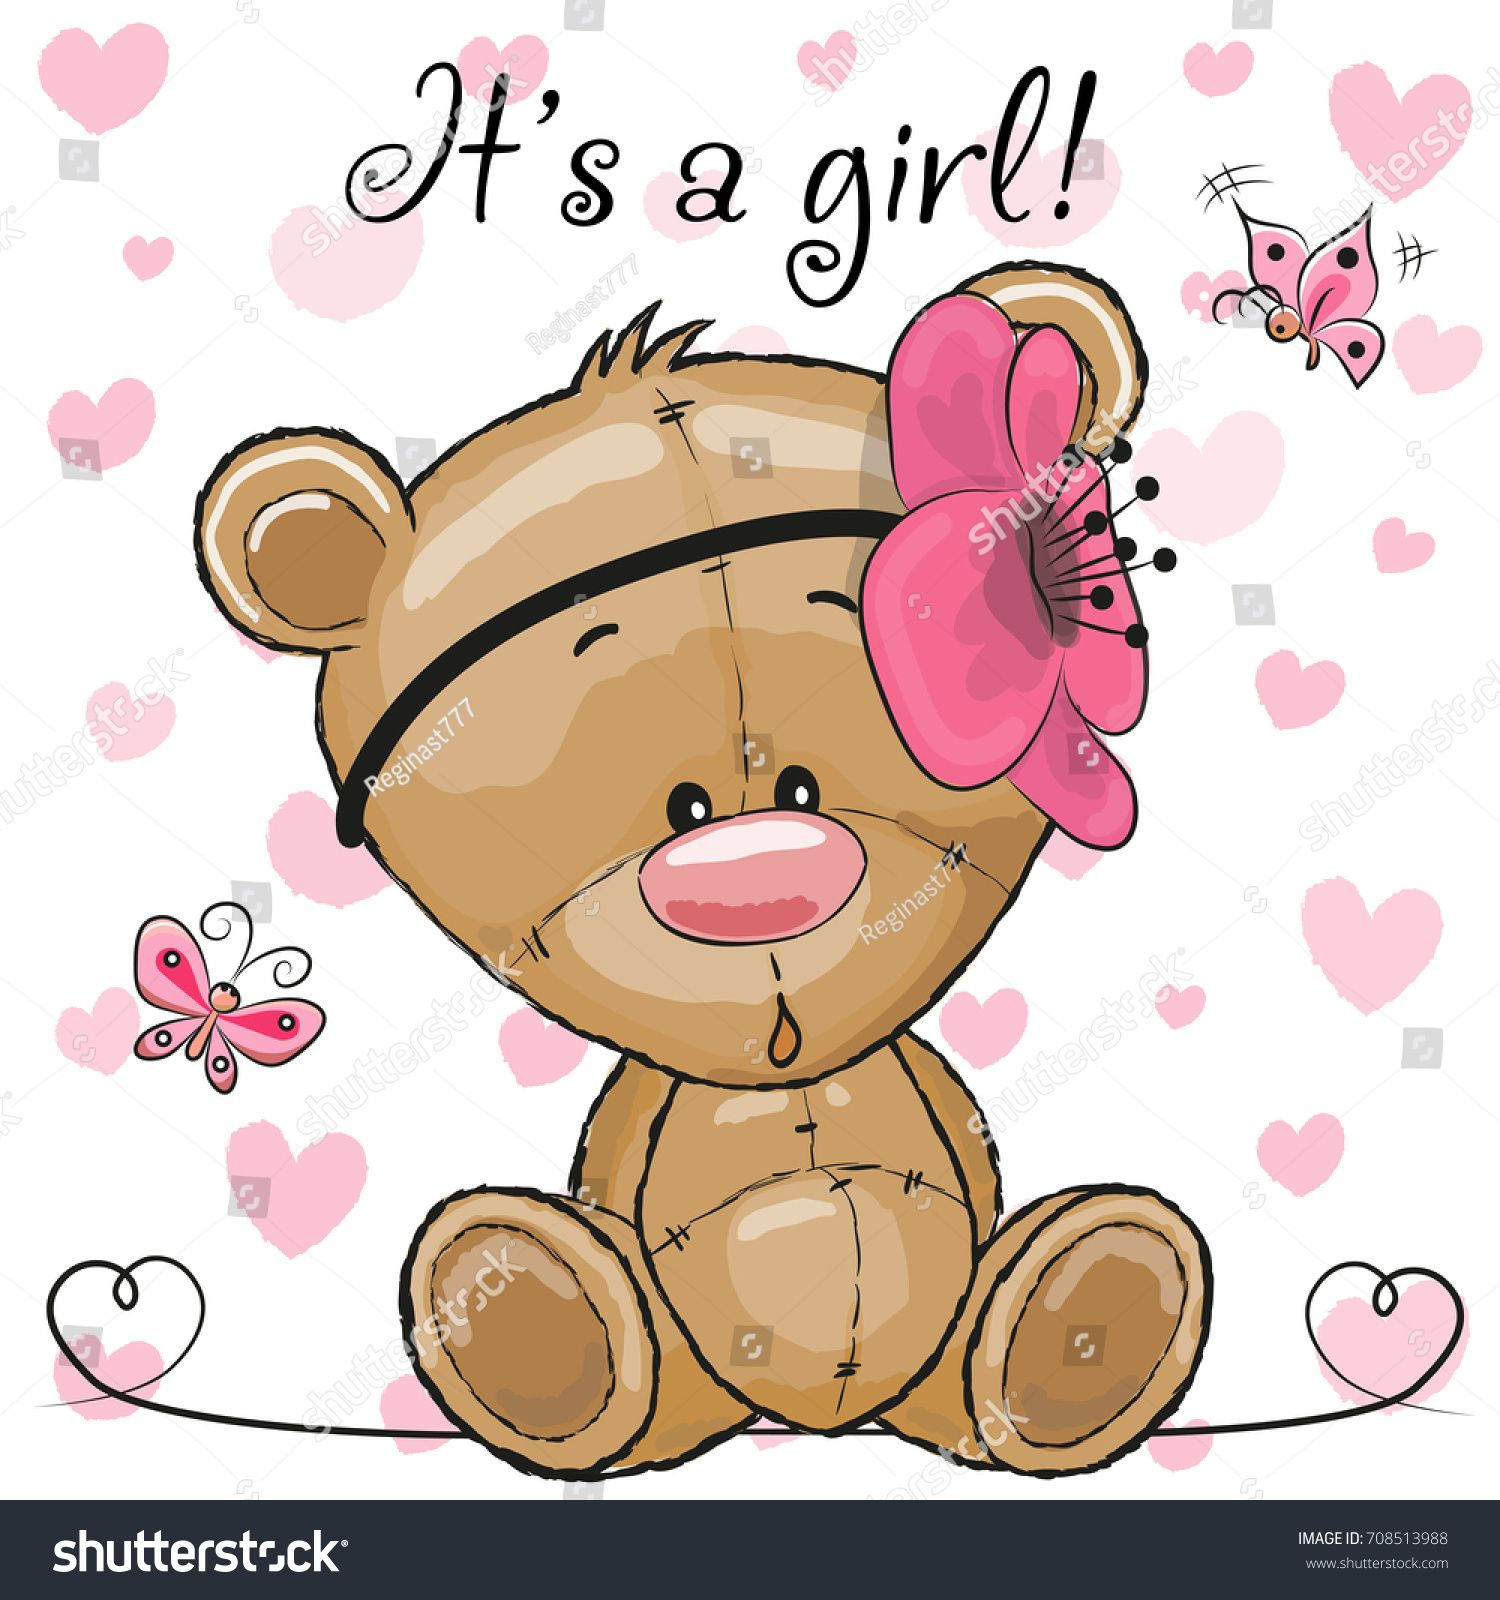 Baby shower greeting card with cute cartoon teddy bear girl baby shower greeting card with cute cartoon teddy bear girl kristyandbryce Image collections